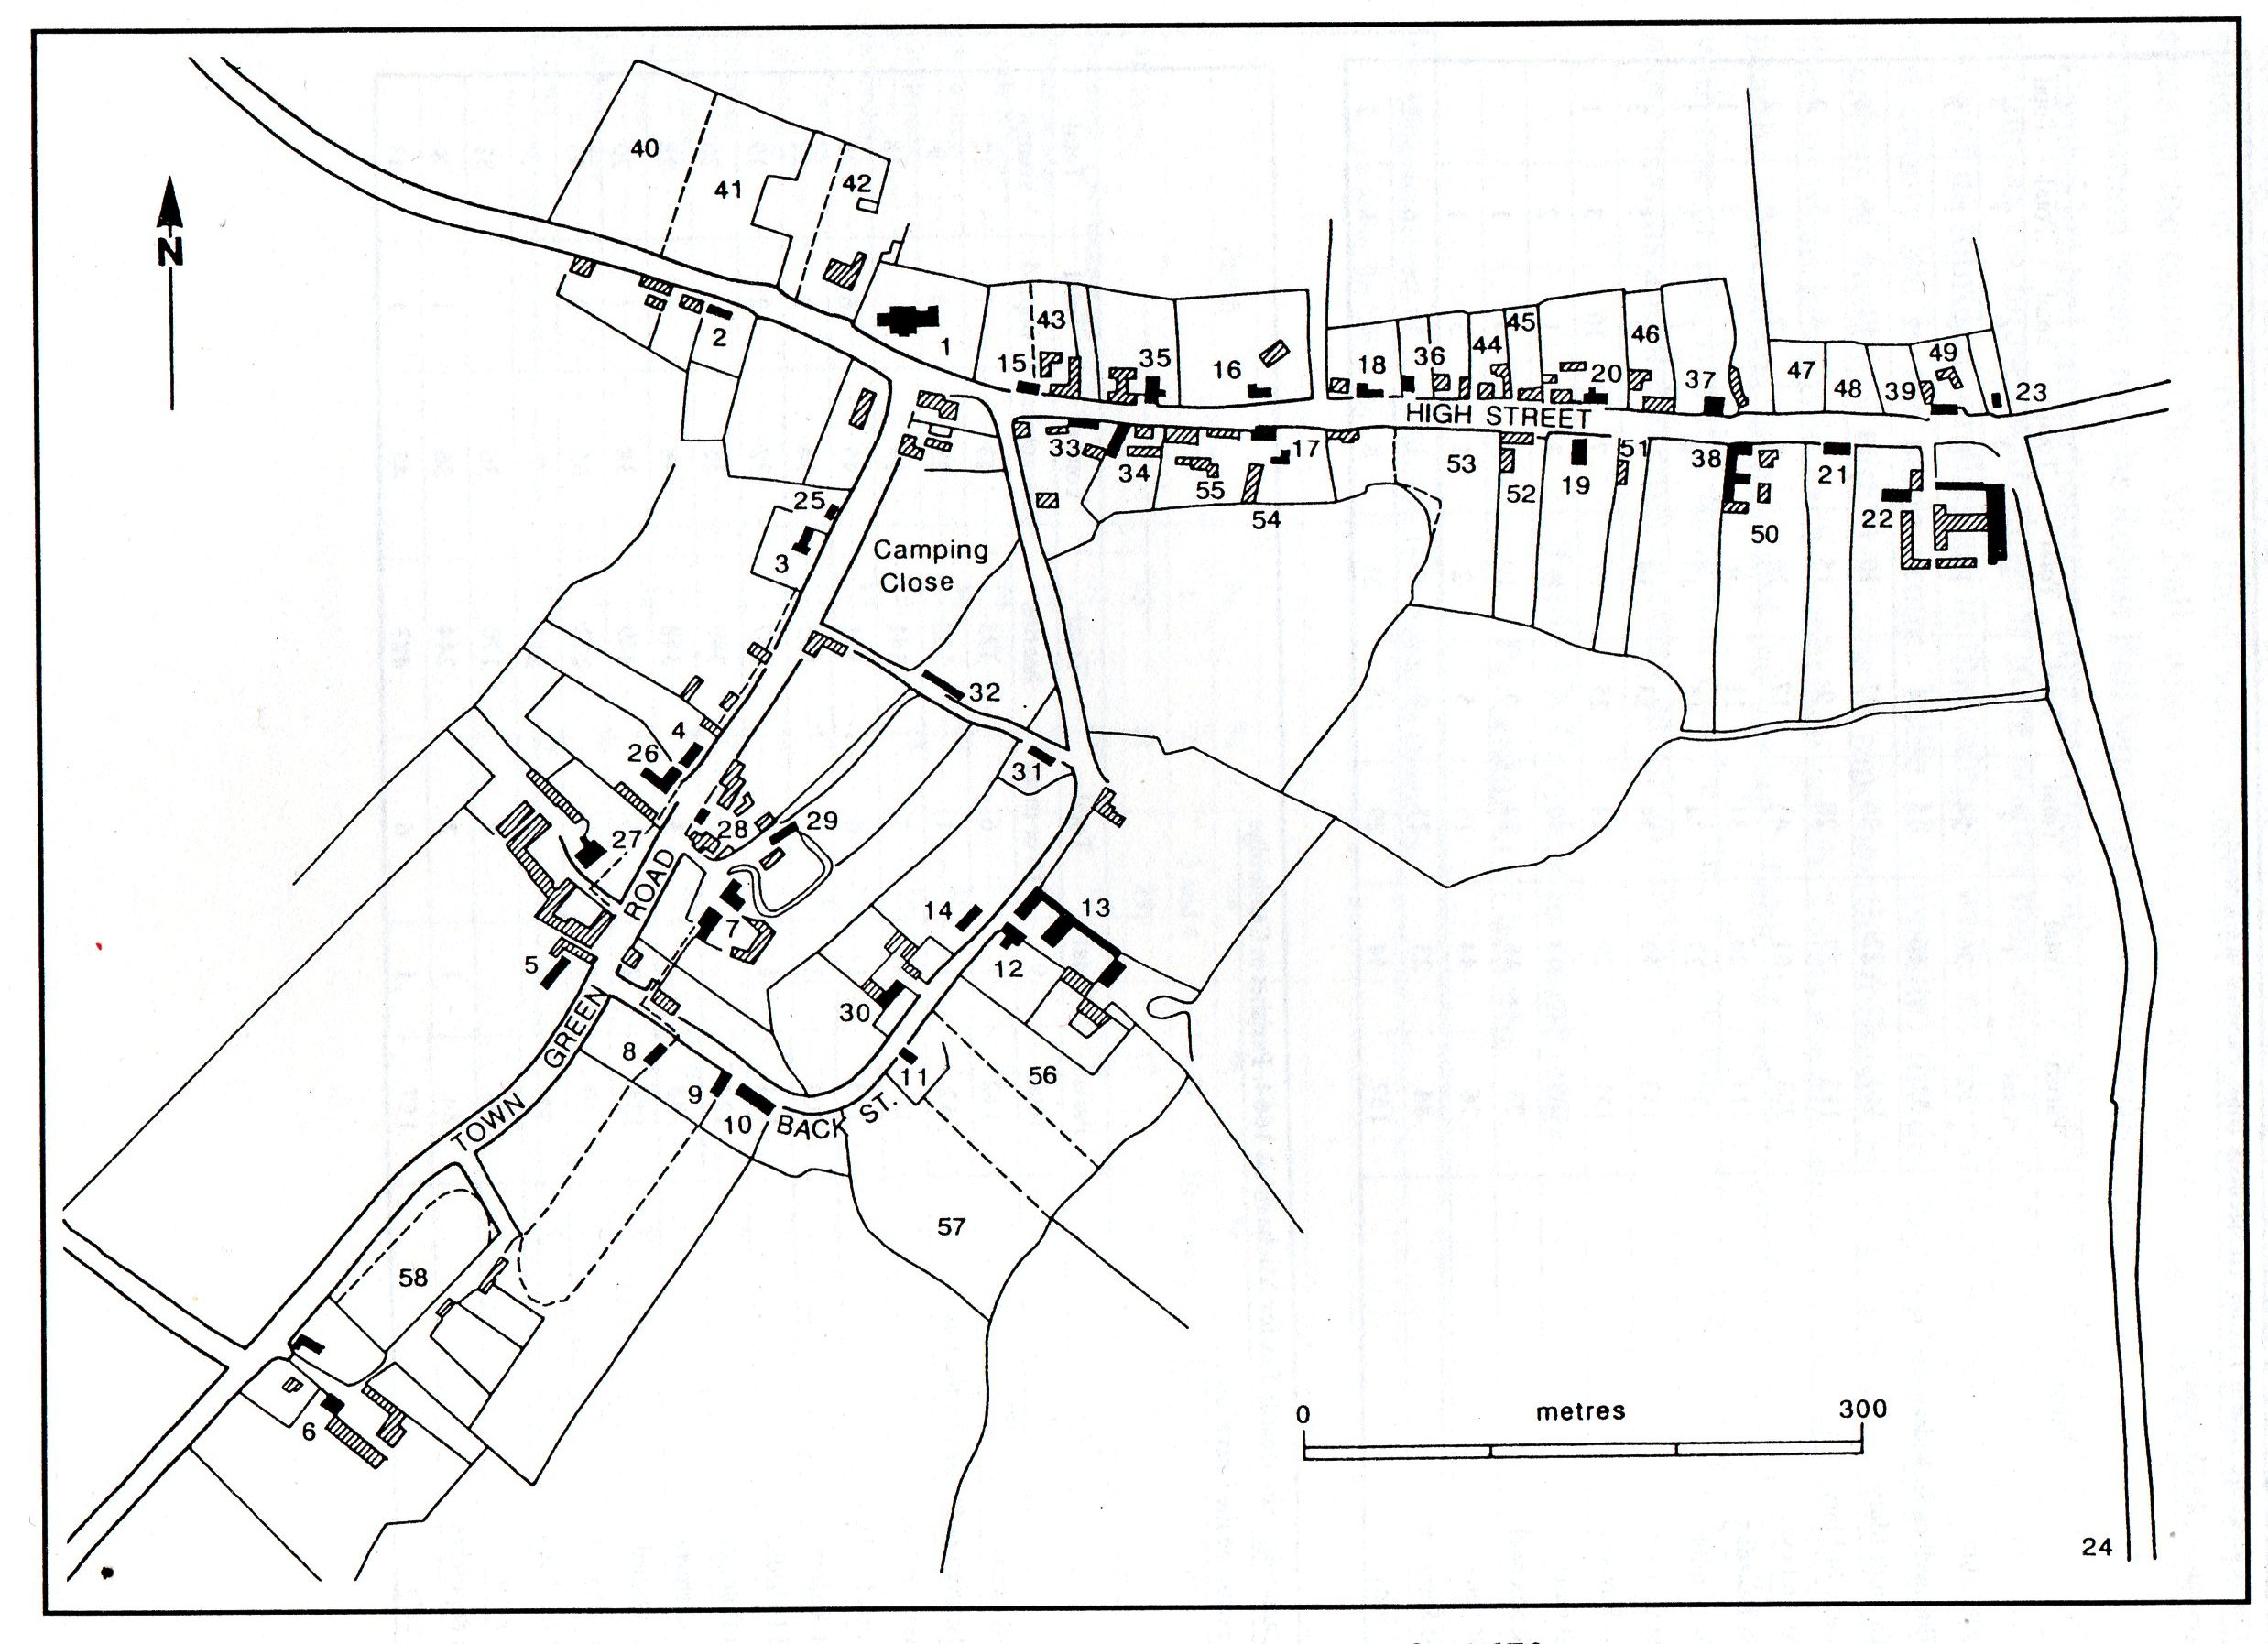 2476x1795 A Street Map, And An Index Map Showing Each Historic Building